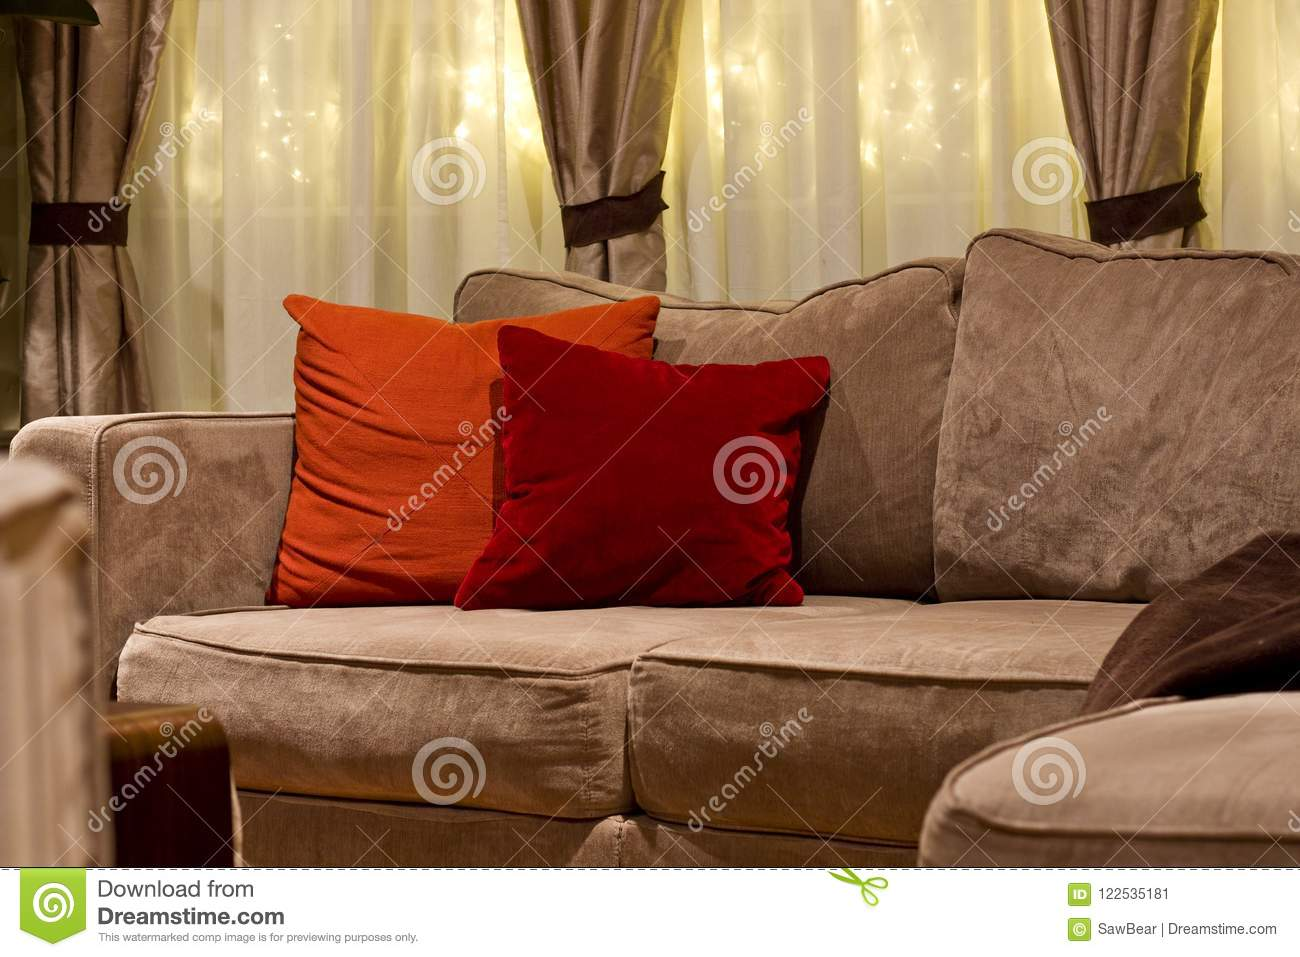 175 Throw Pillows Couch Photos Free Royalty Free Stock Photos From Dreamstime